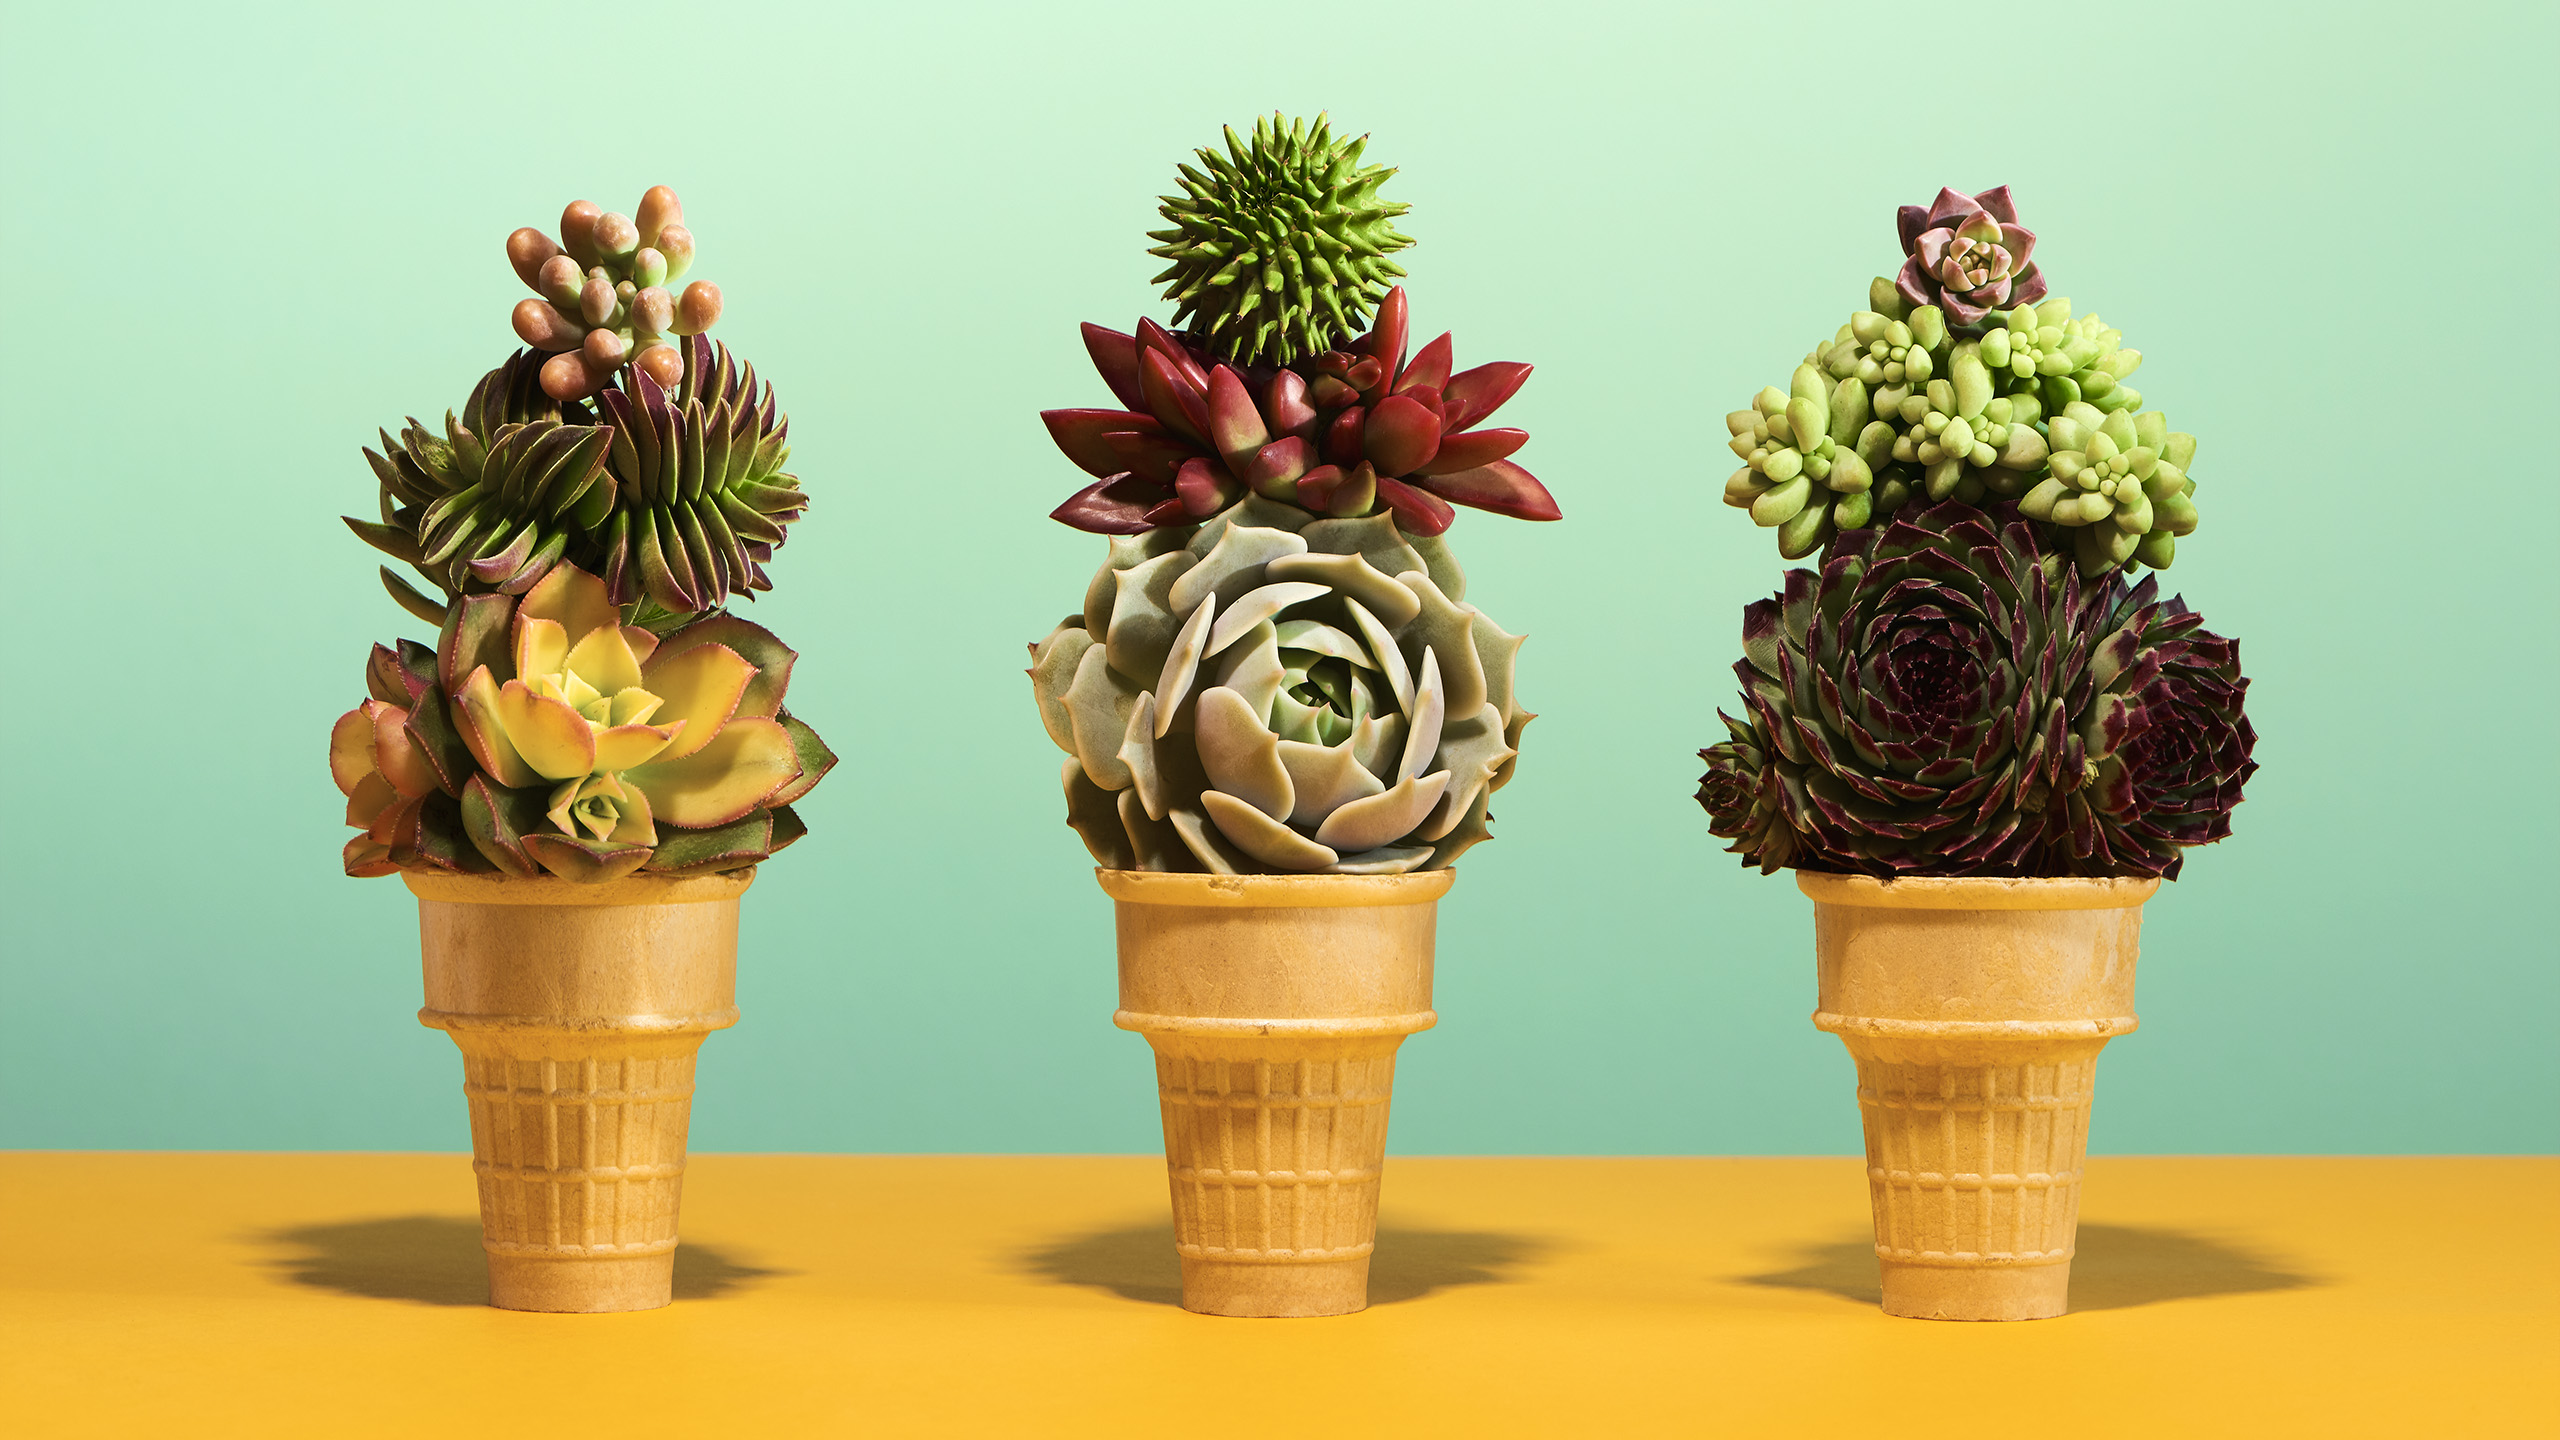 Saulty Succulents PDN Award winner  styled by Jessica Stewart Prop Stylist Specializing in conceptual Imagery and Styling